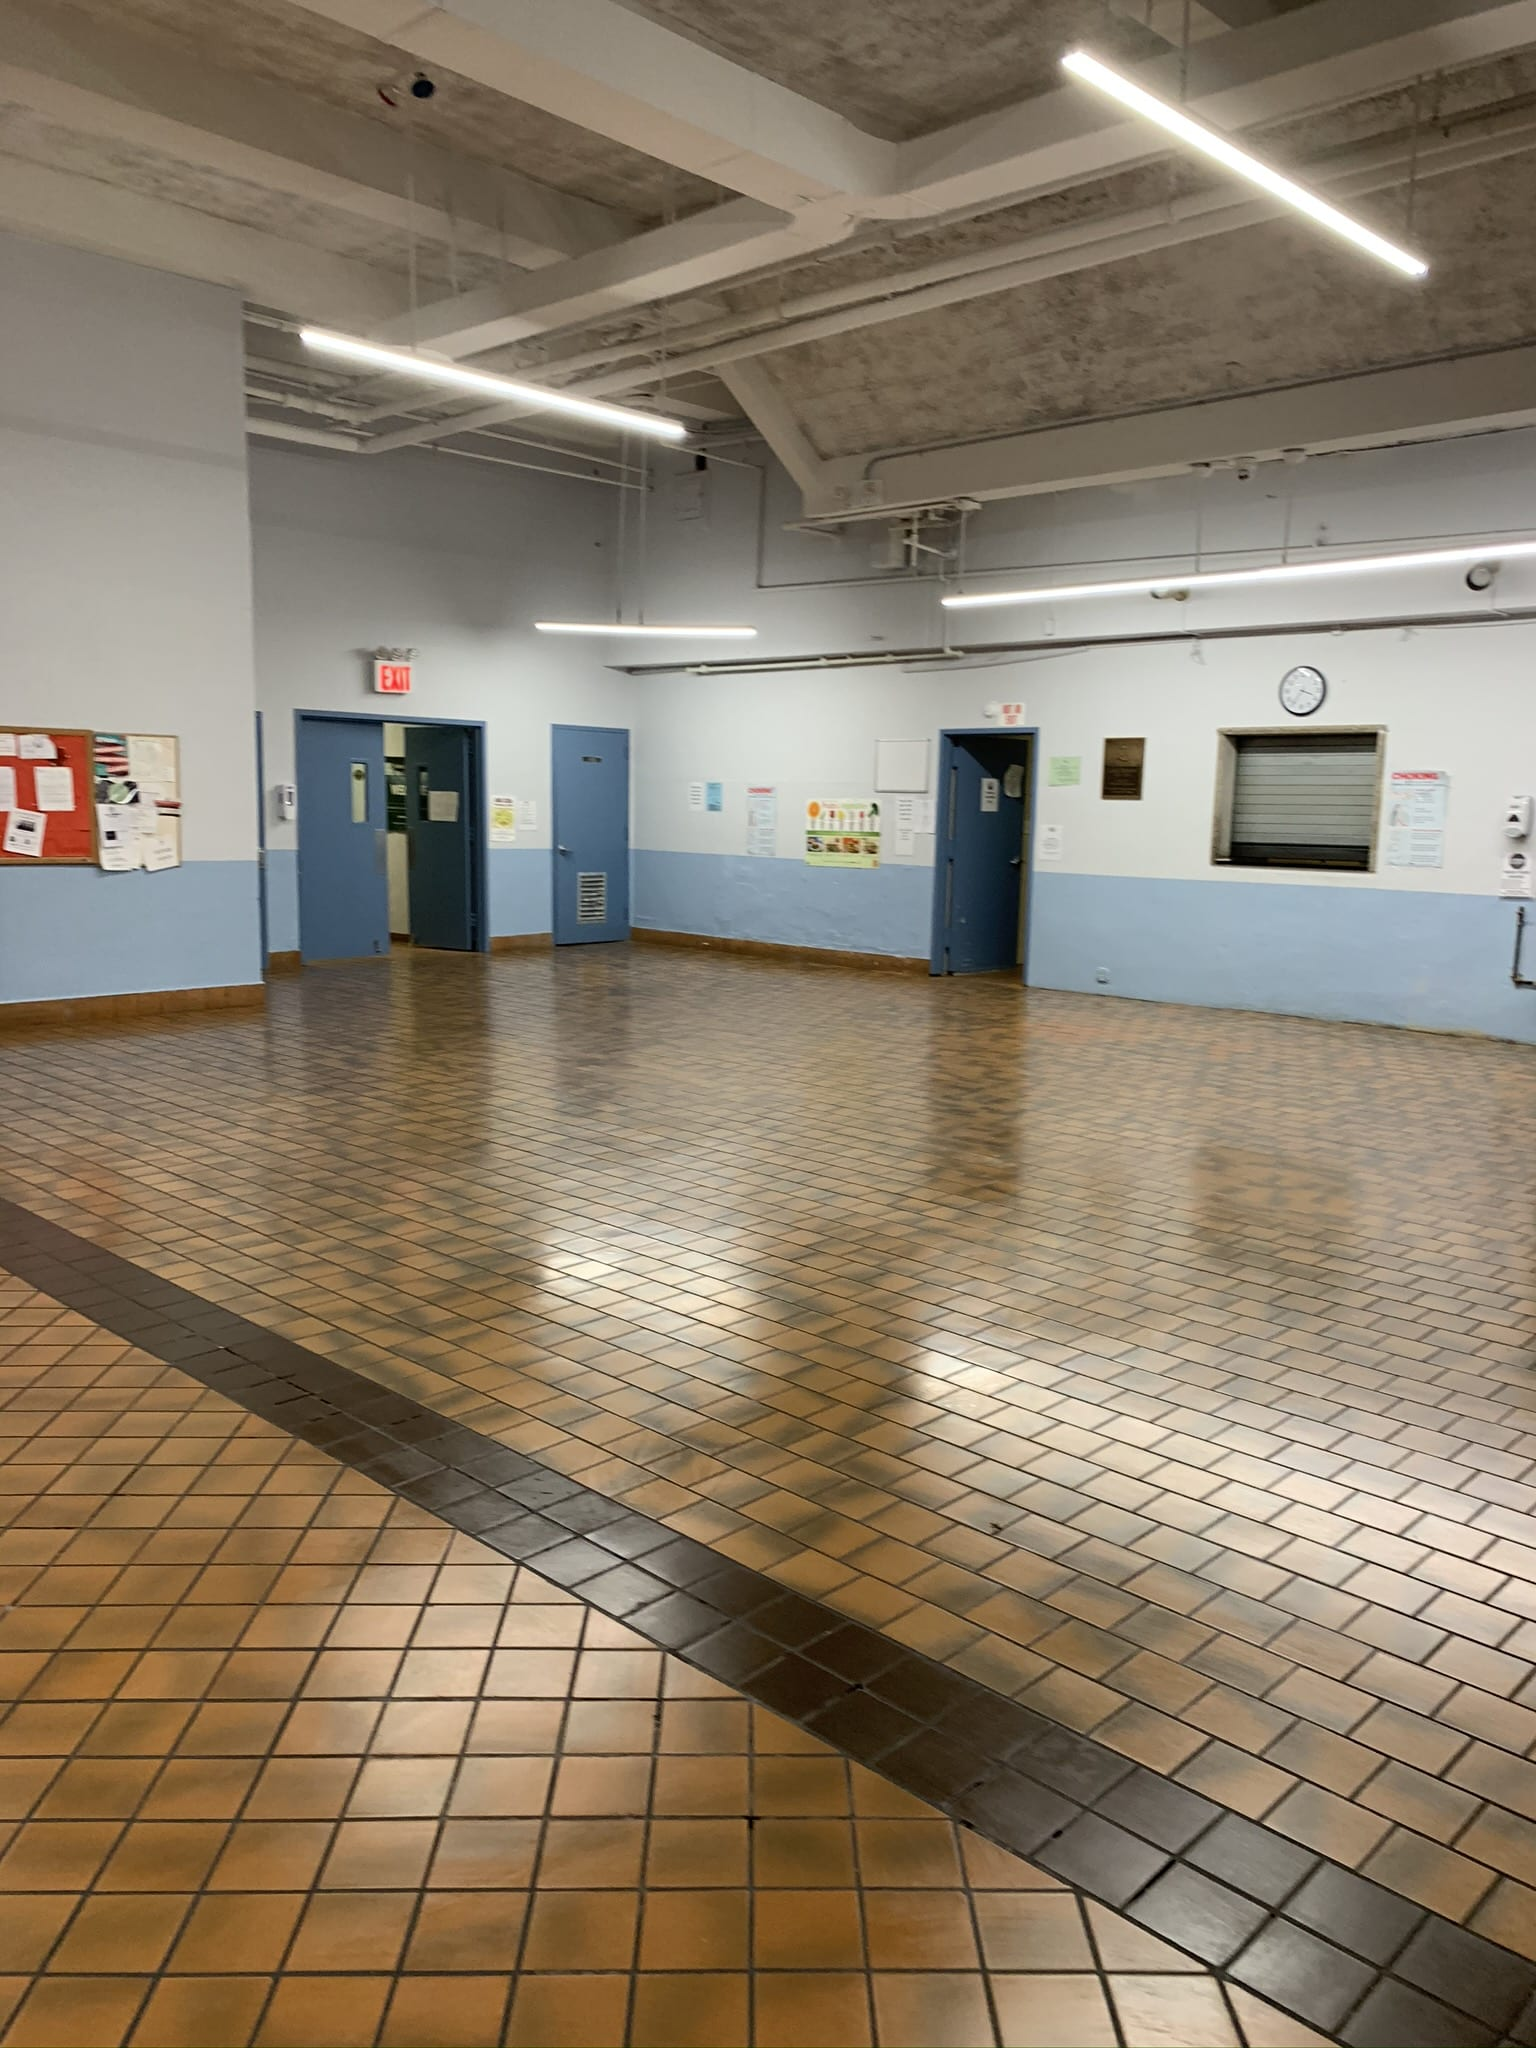 School Cleaning Jersey City New Jersey